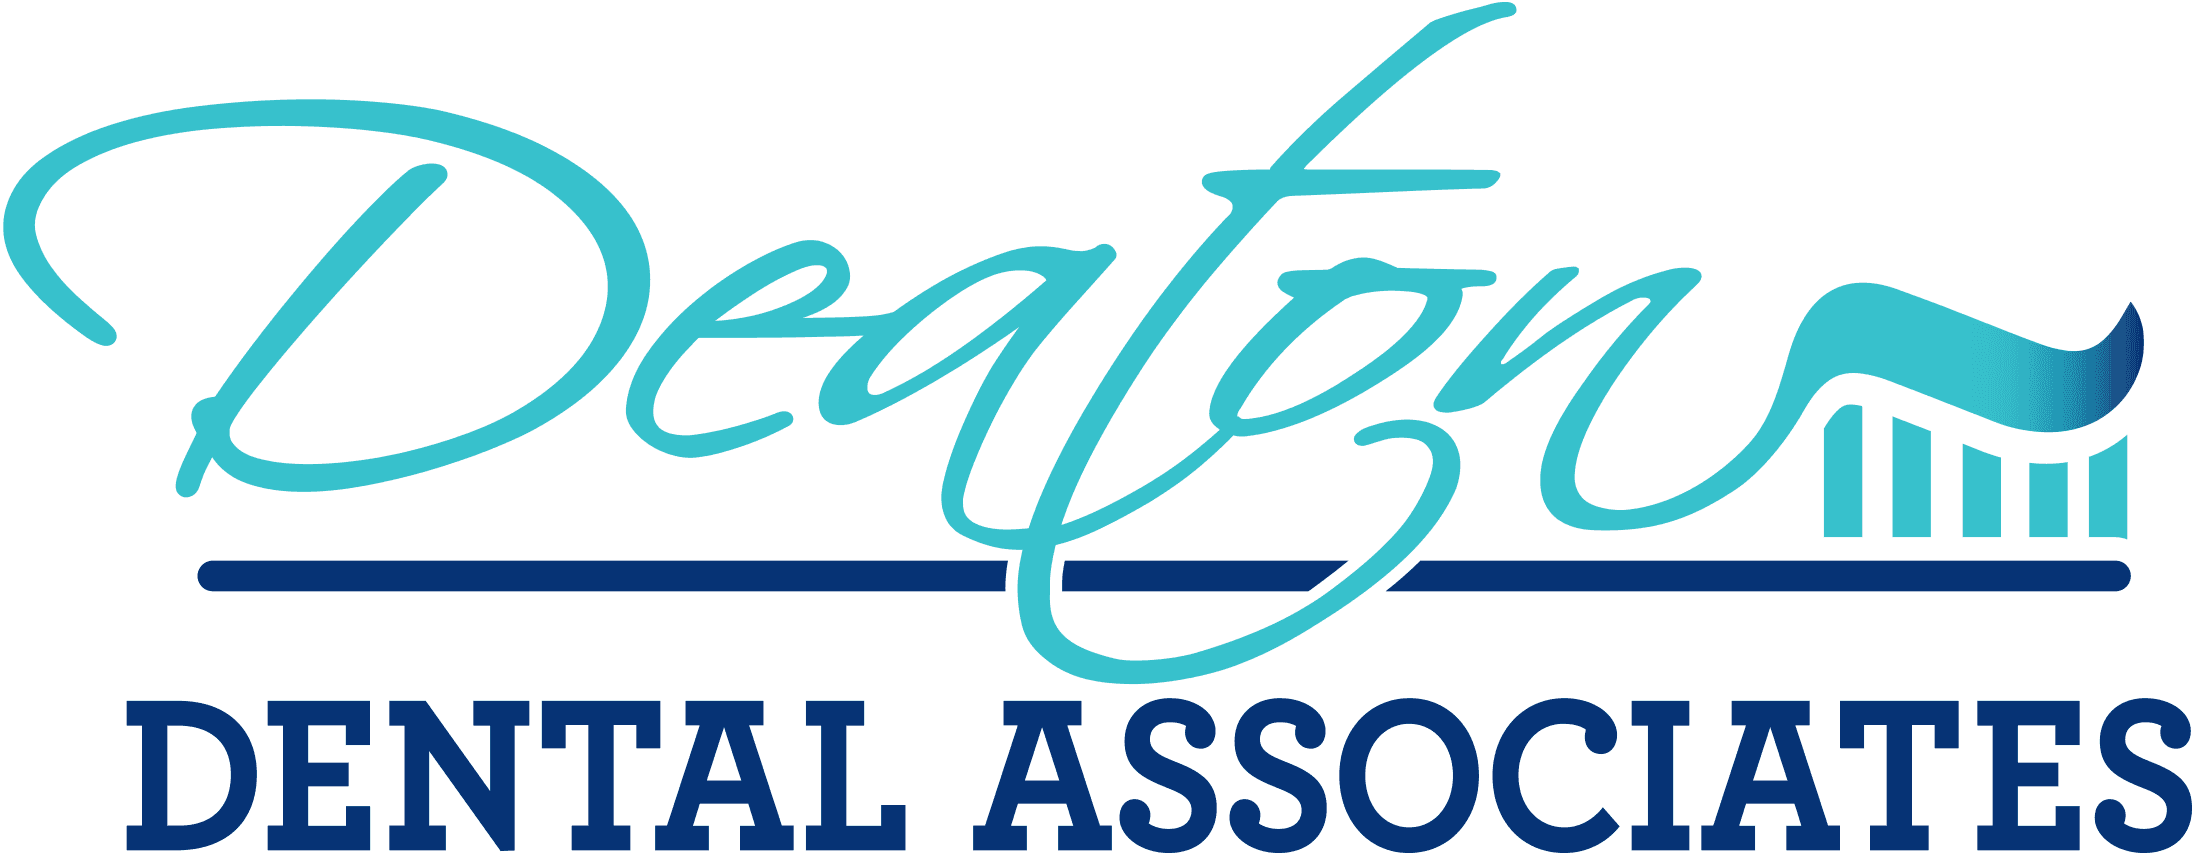 Dental Associates of Summerville